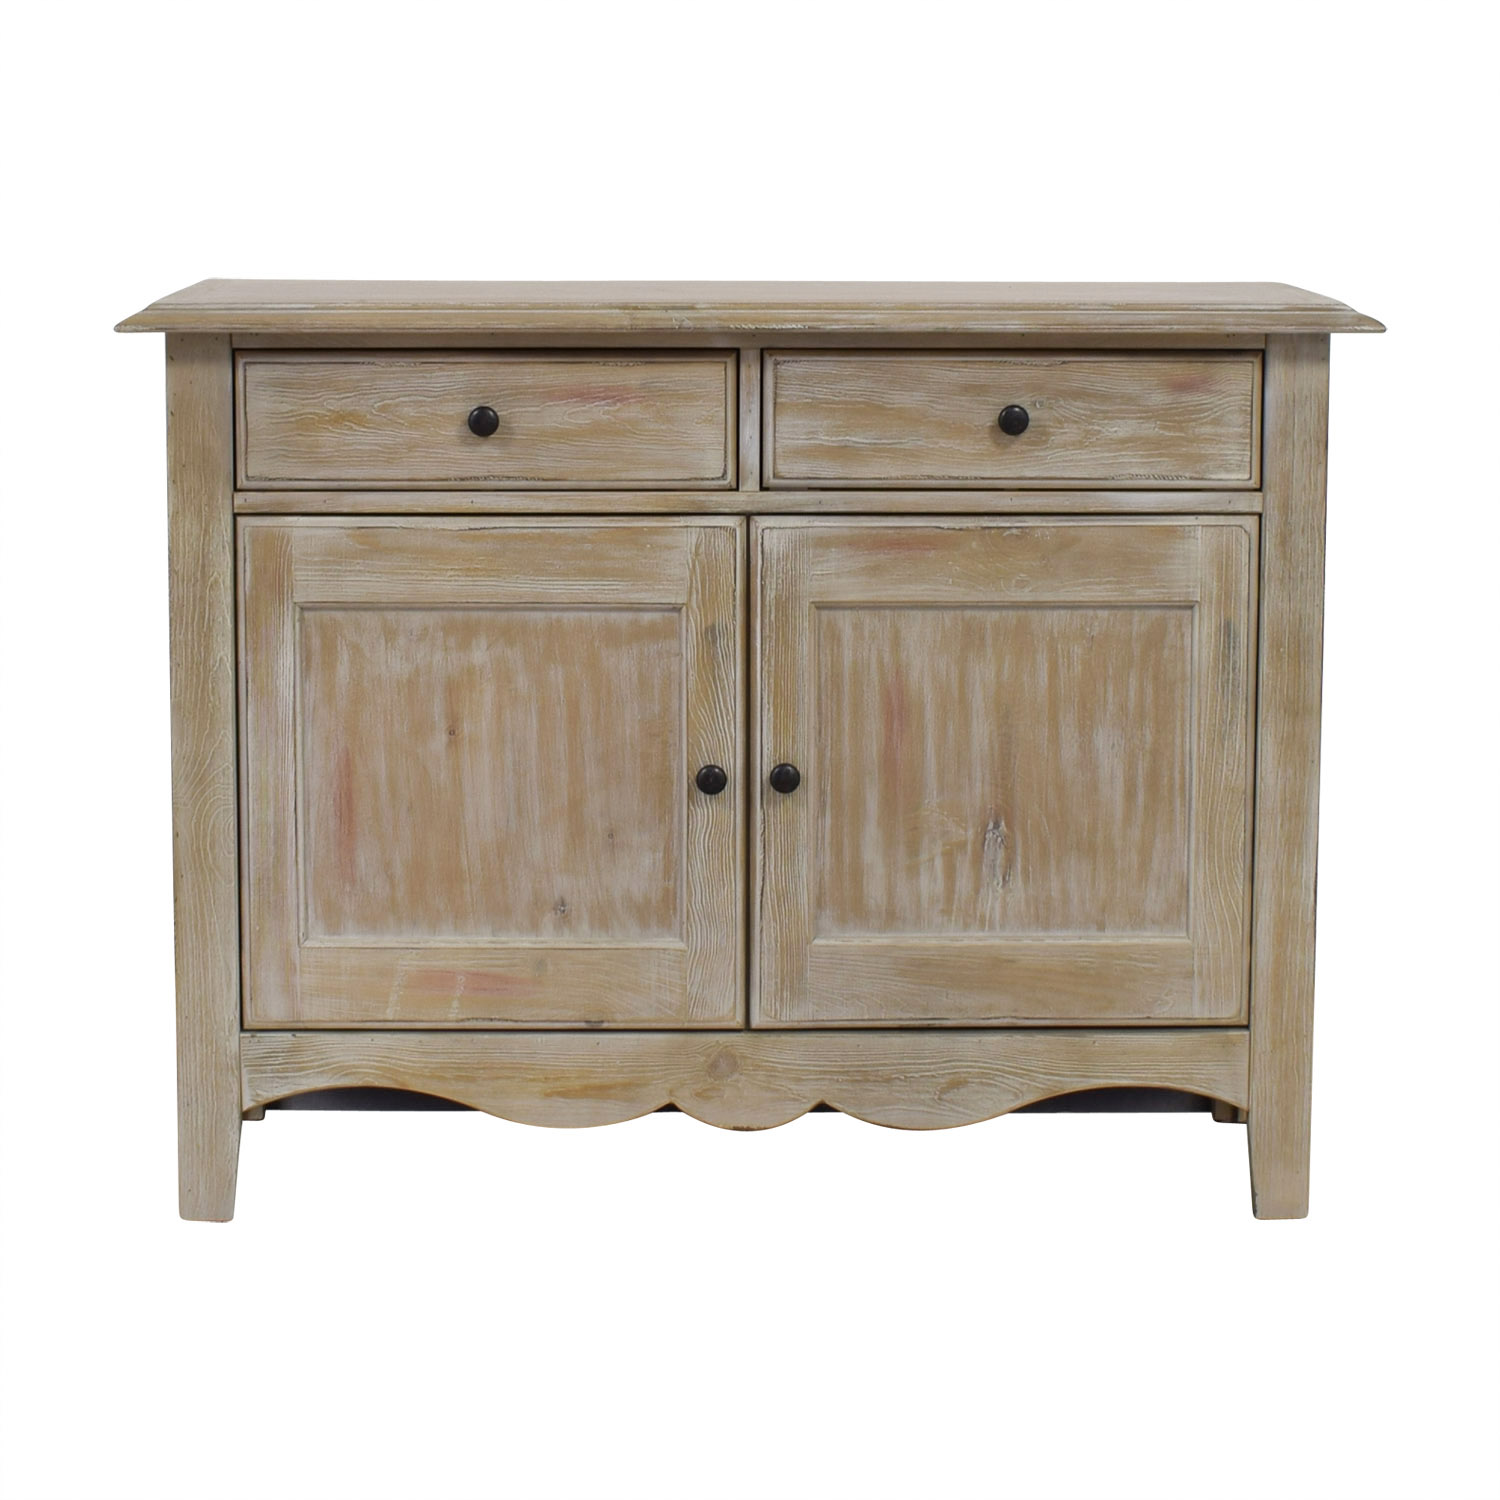 Distressed Wood Two-Drawer Cabinet second hand